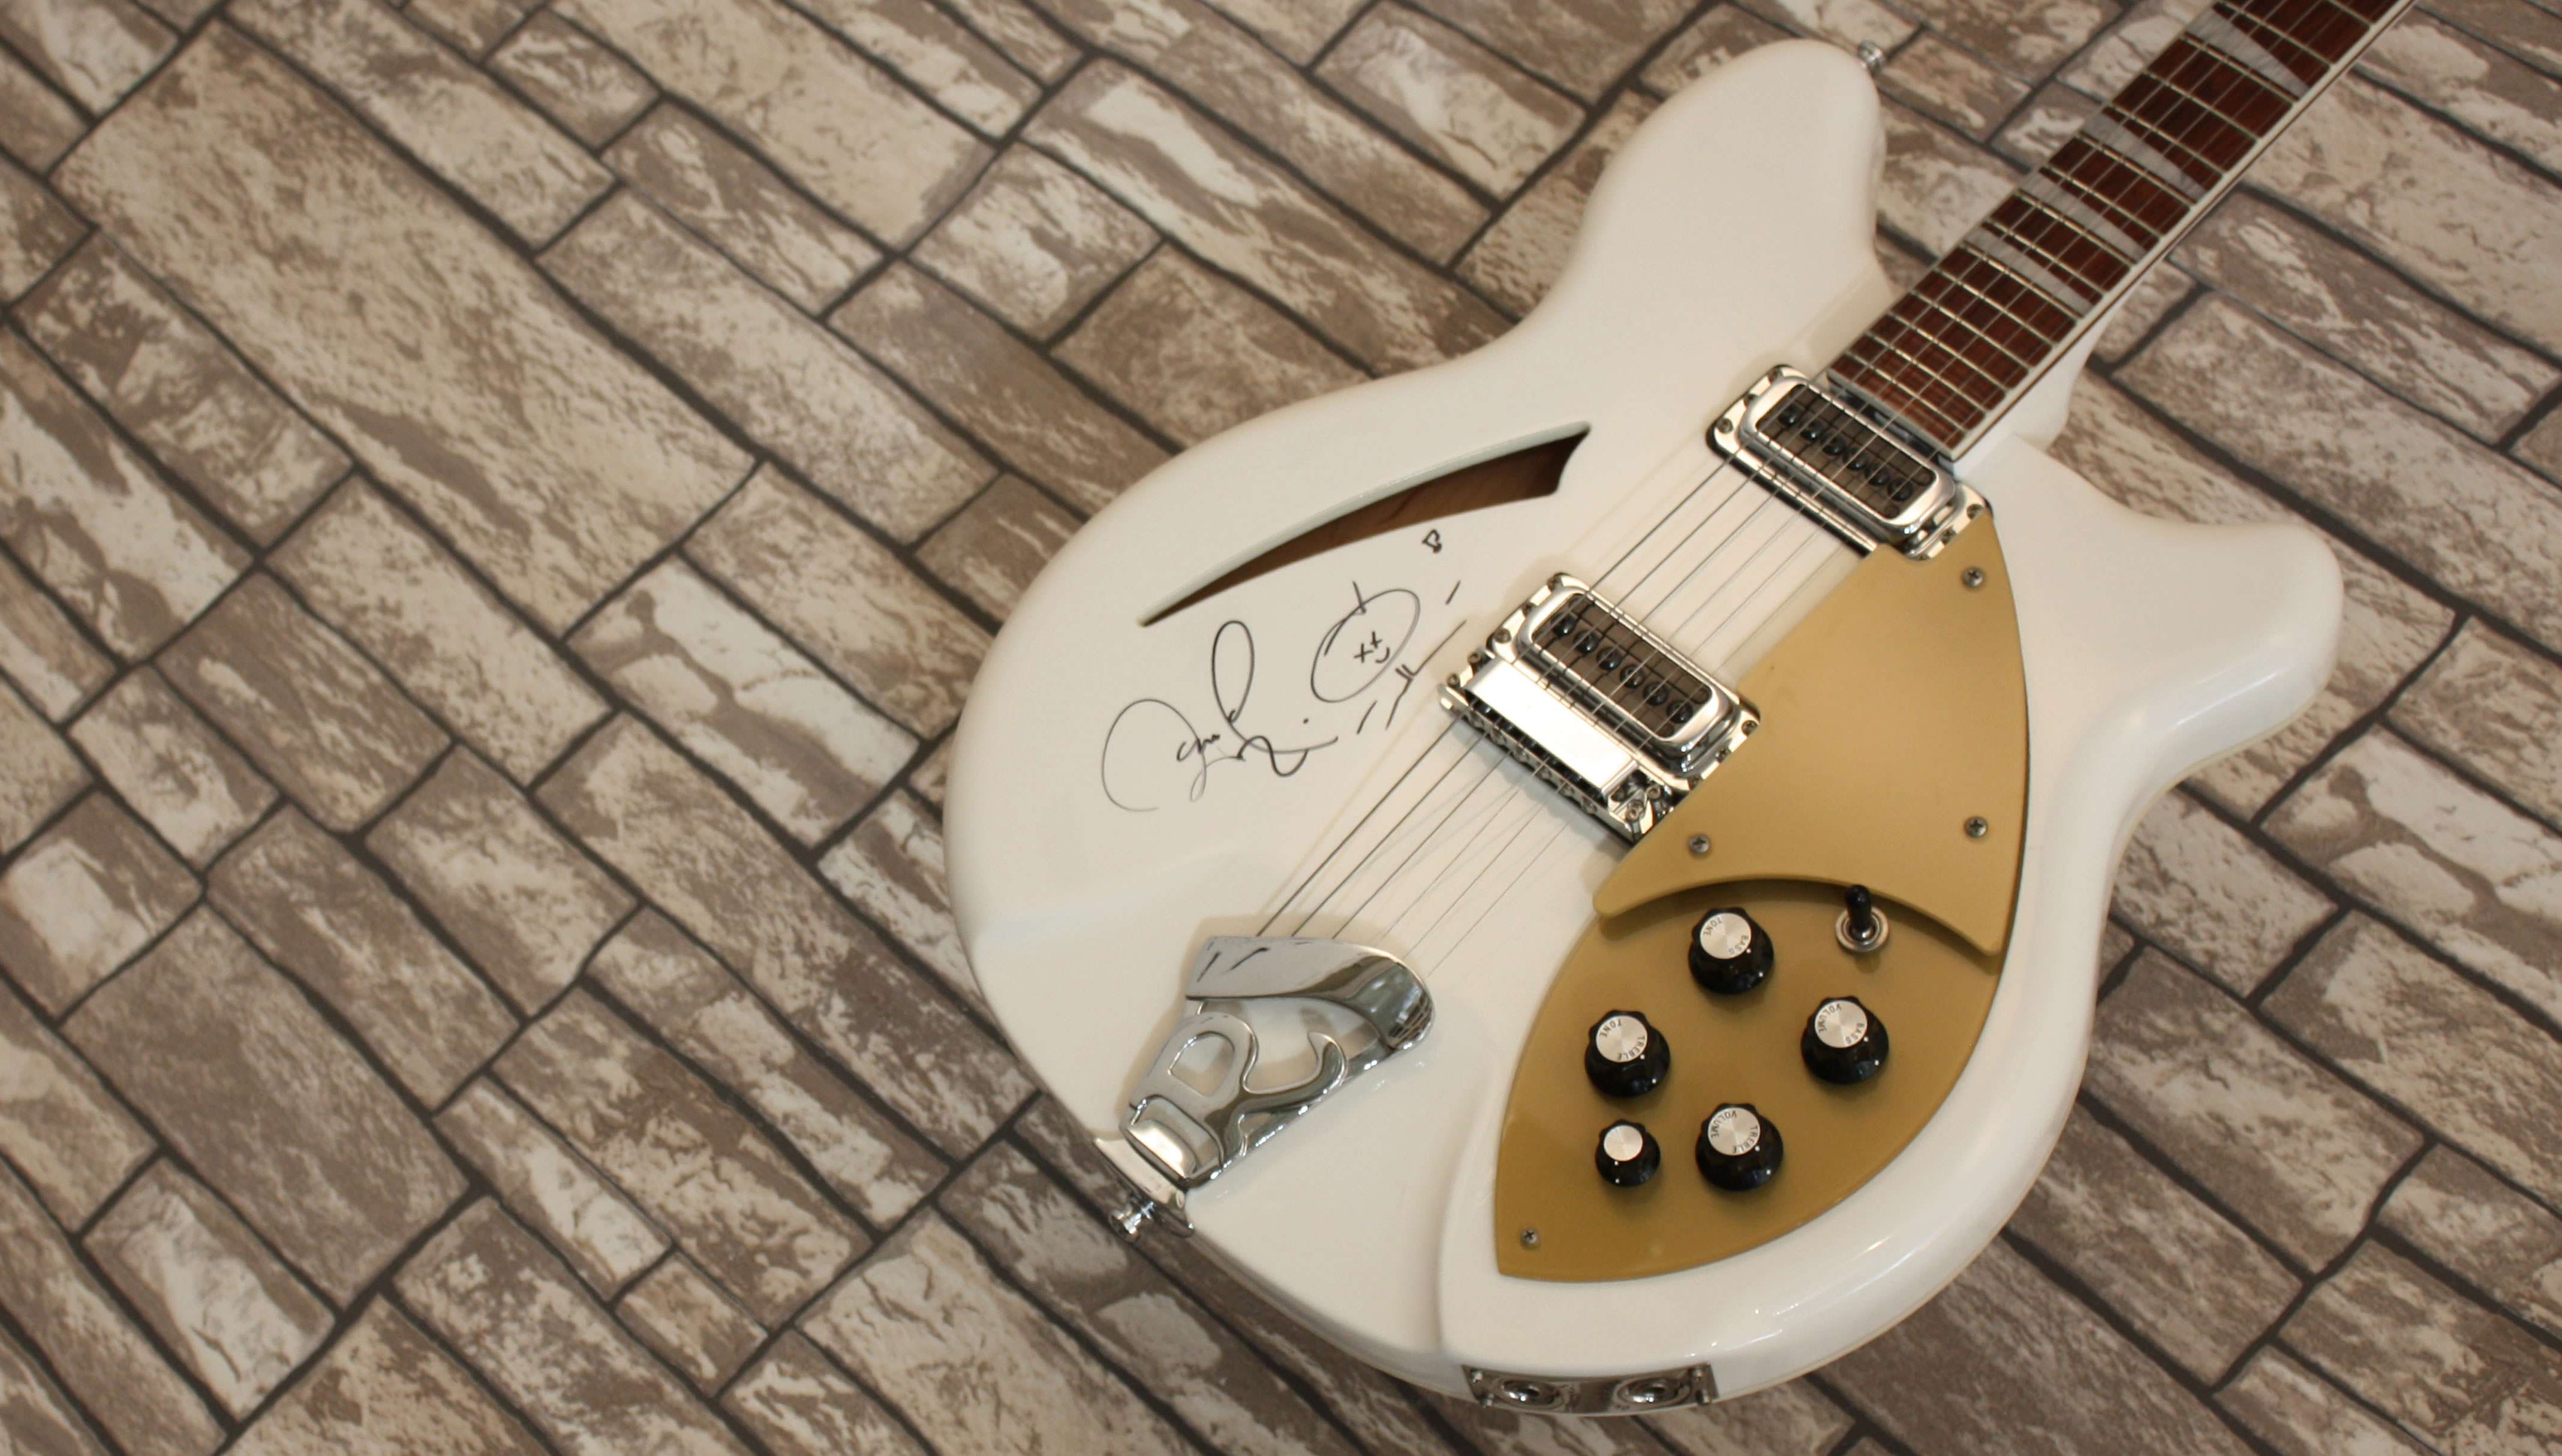 Rickenbacker 360 White 2014 Signed by Per Gessle of Roxette